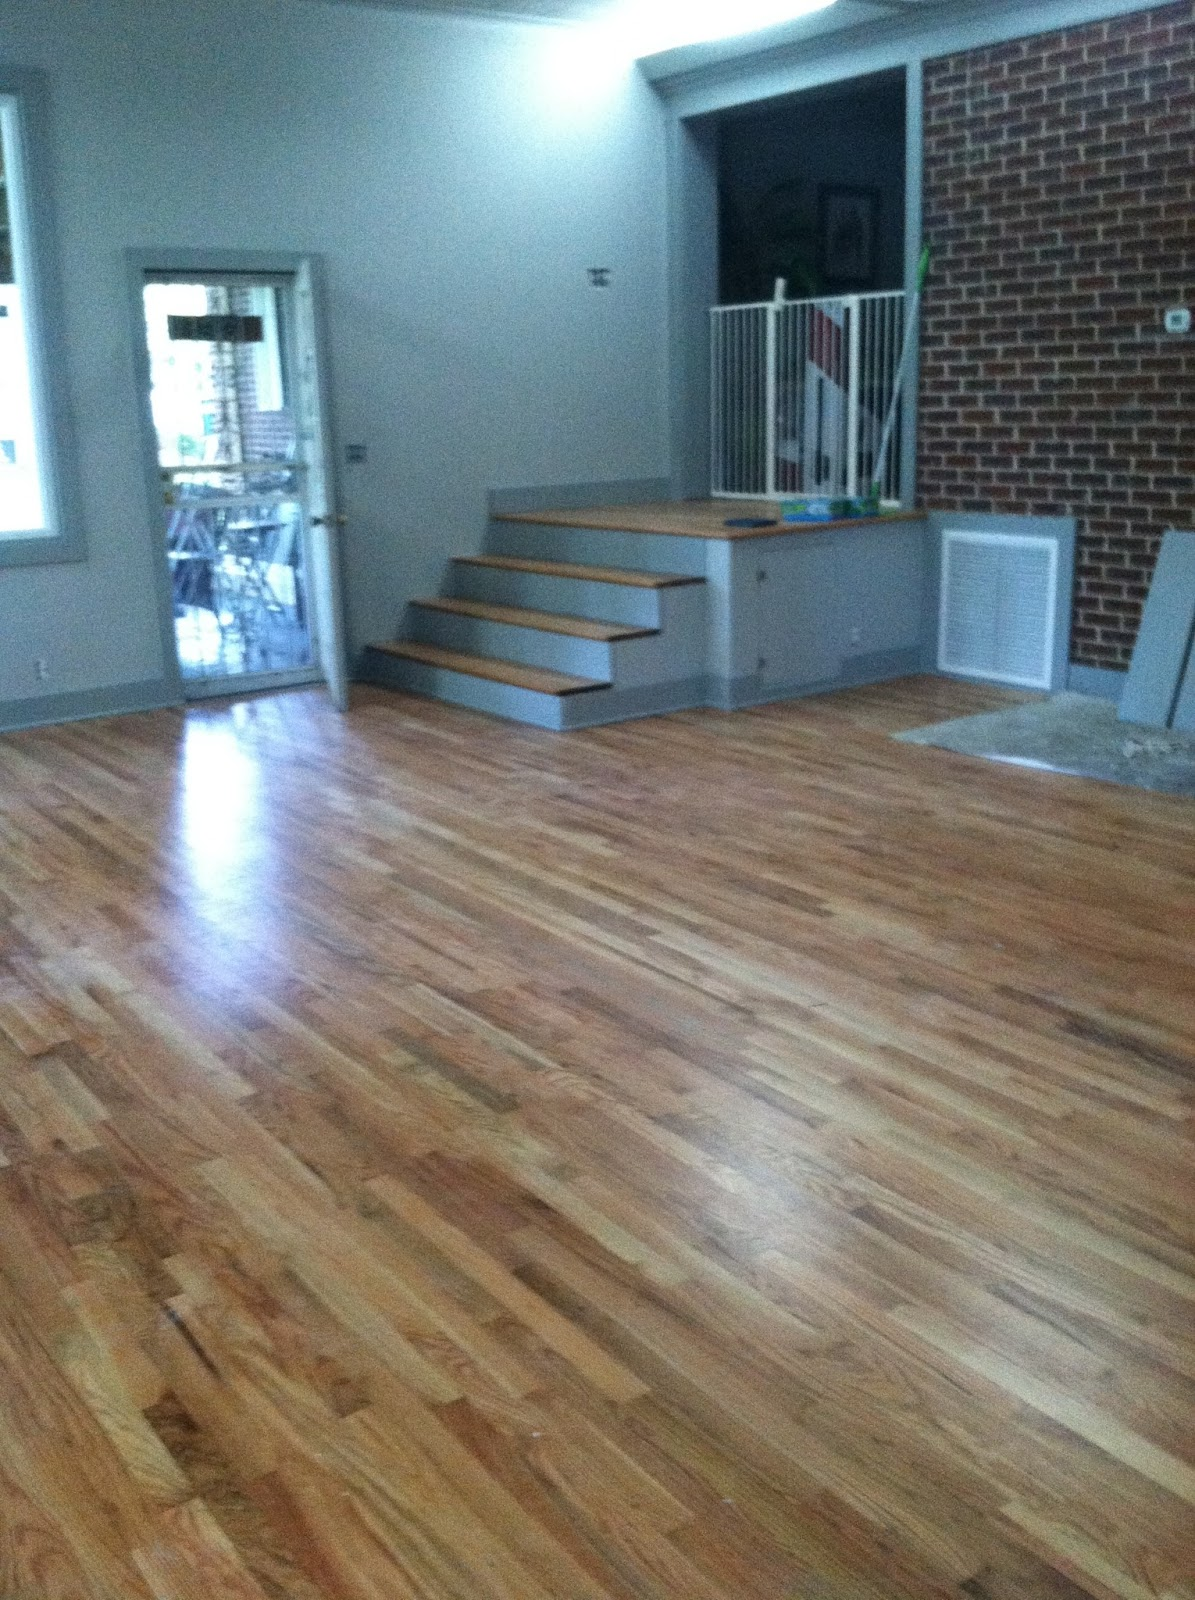 Country flooring direct sand and finish red oak installed Hill country wood flooring